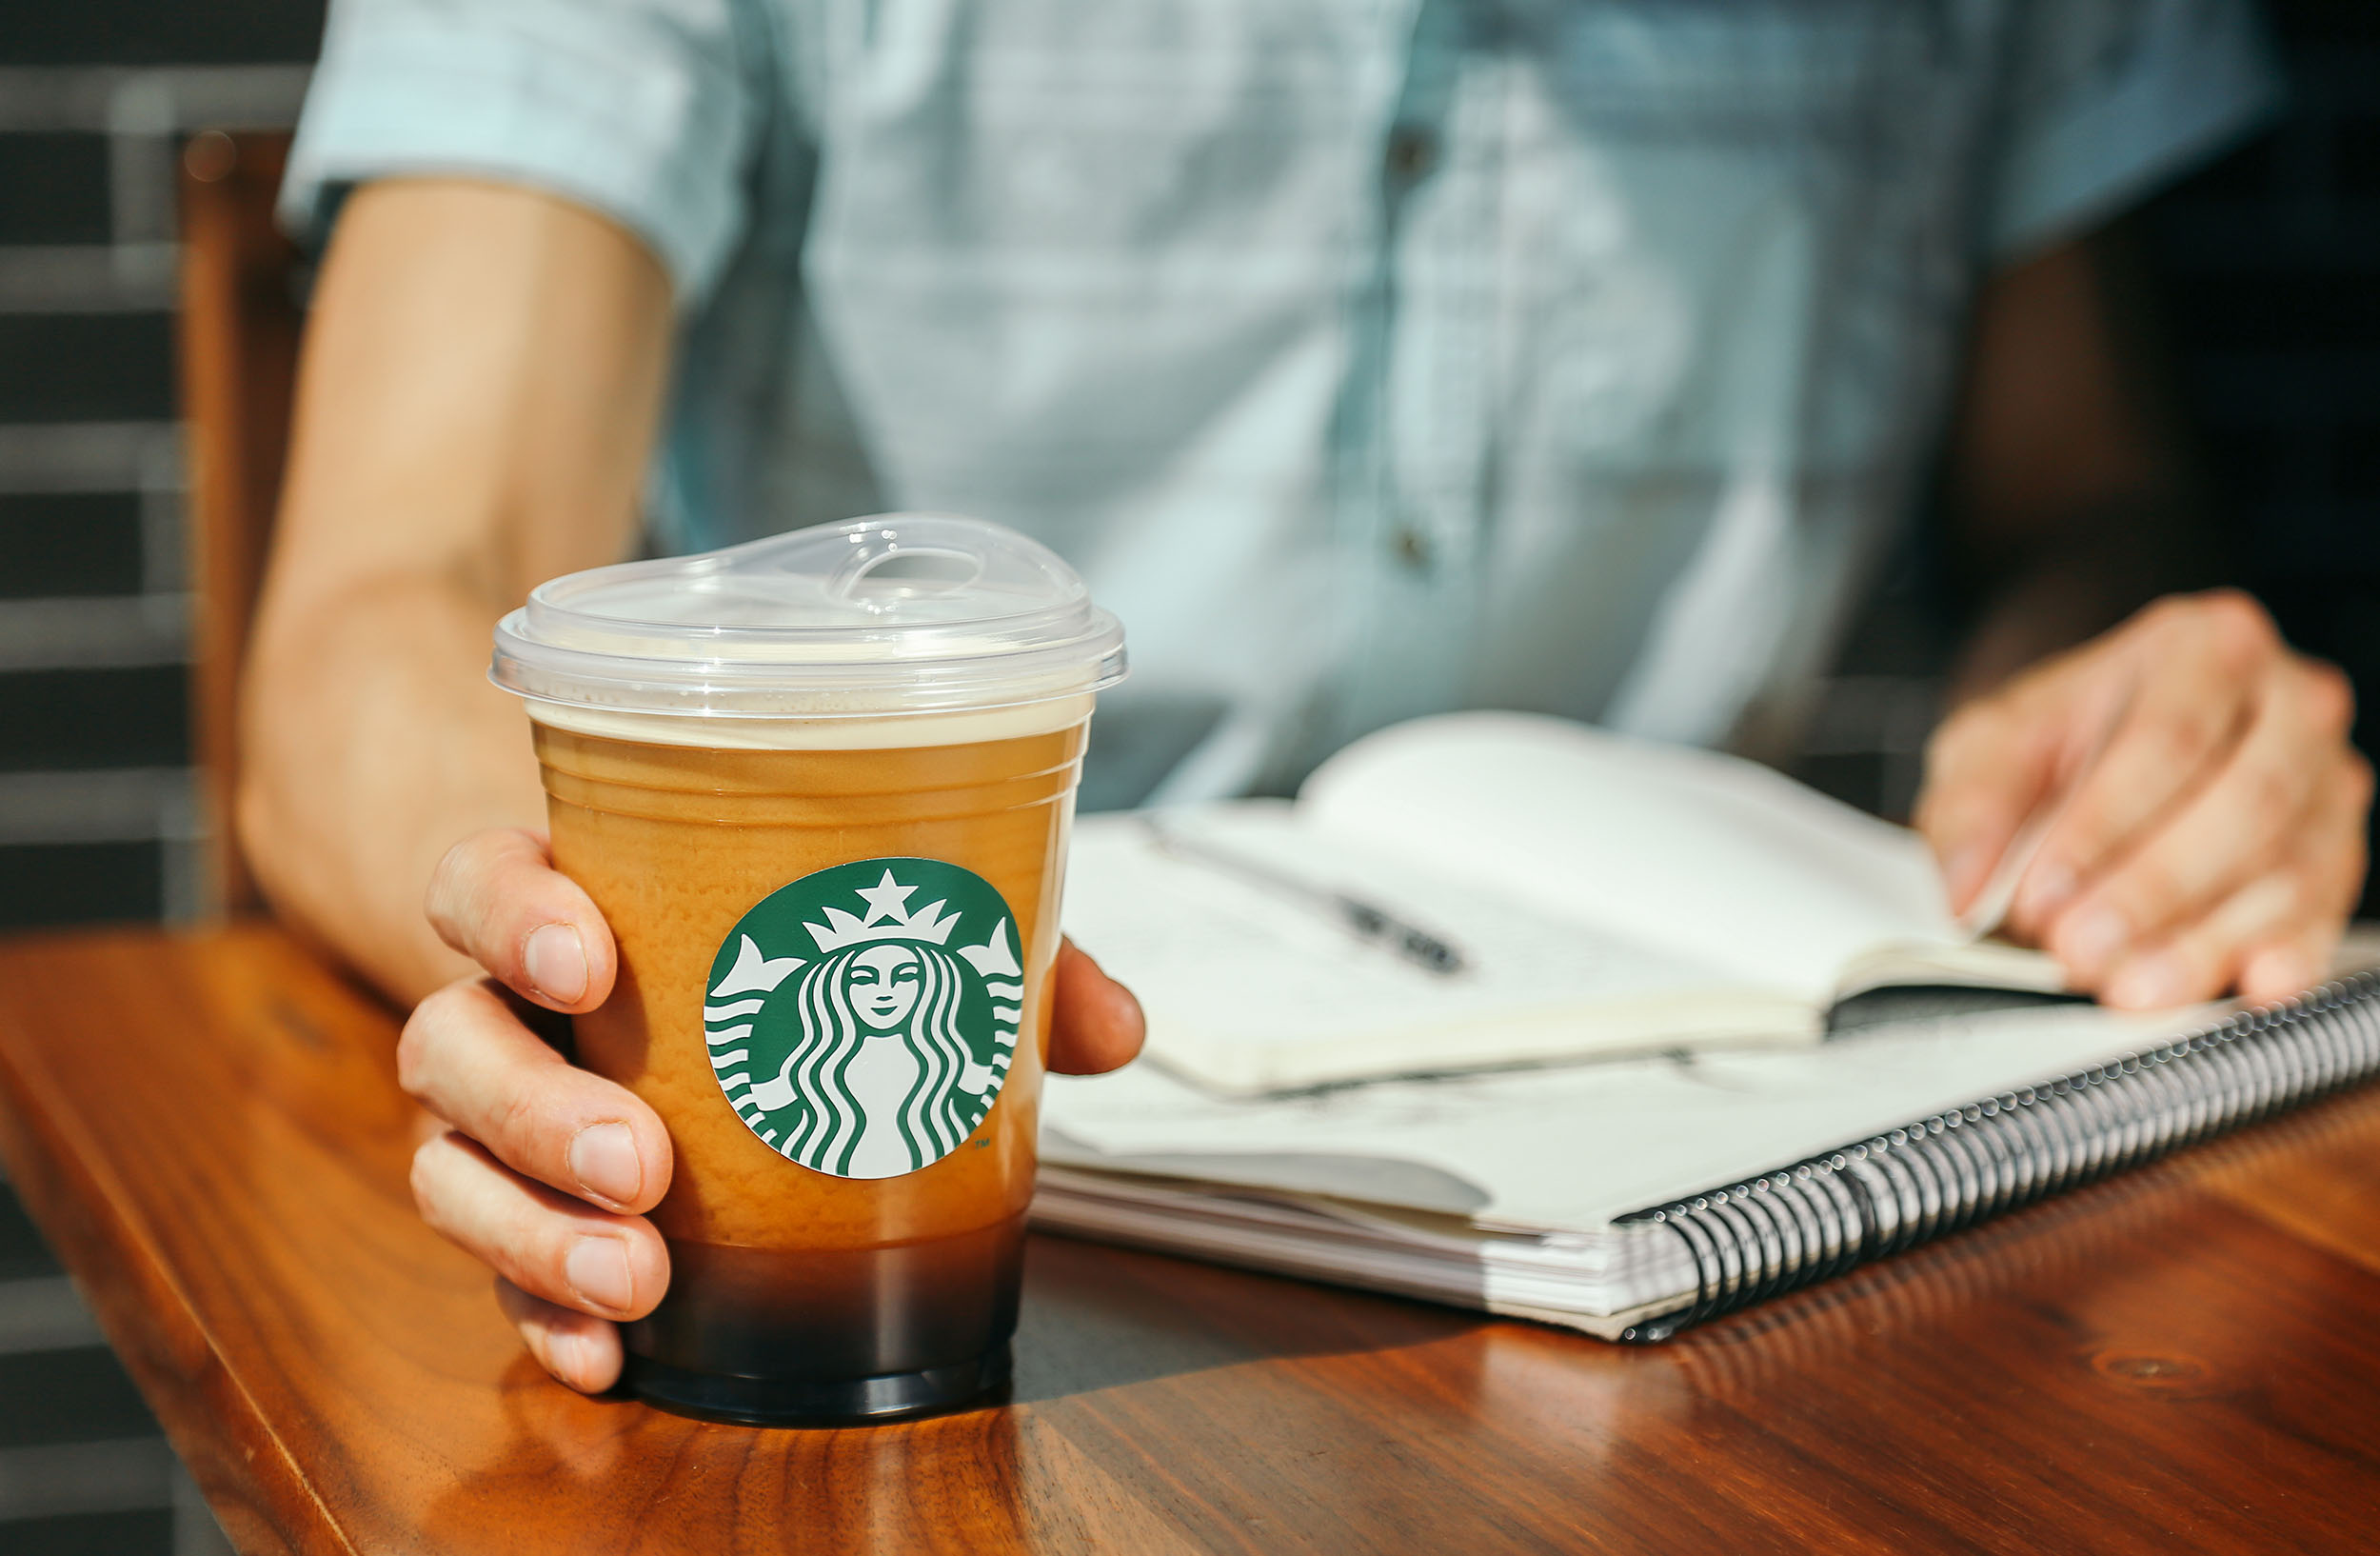 Starbucks-says-it-will-stop-offering-plastic-straws-by-2020